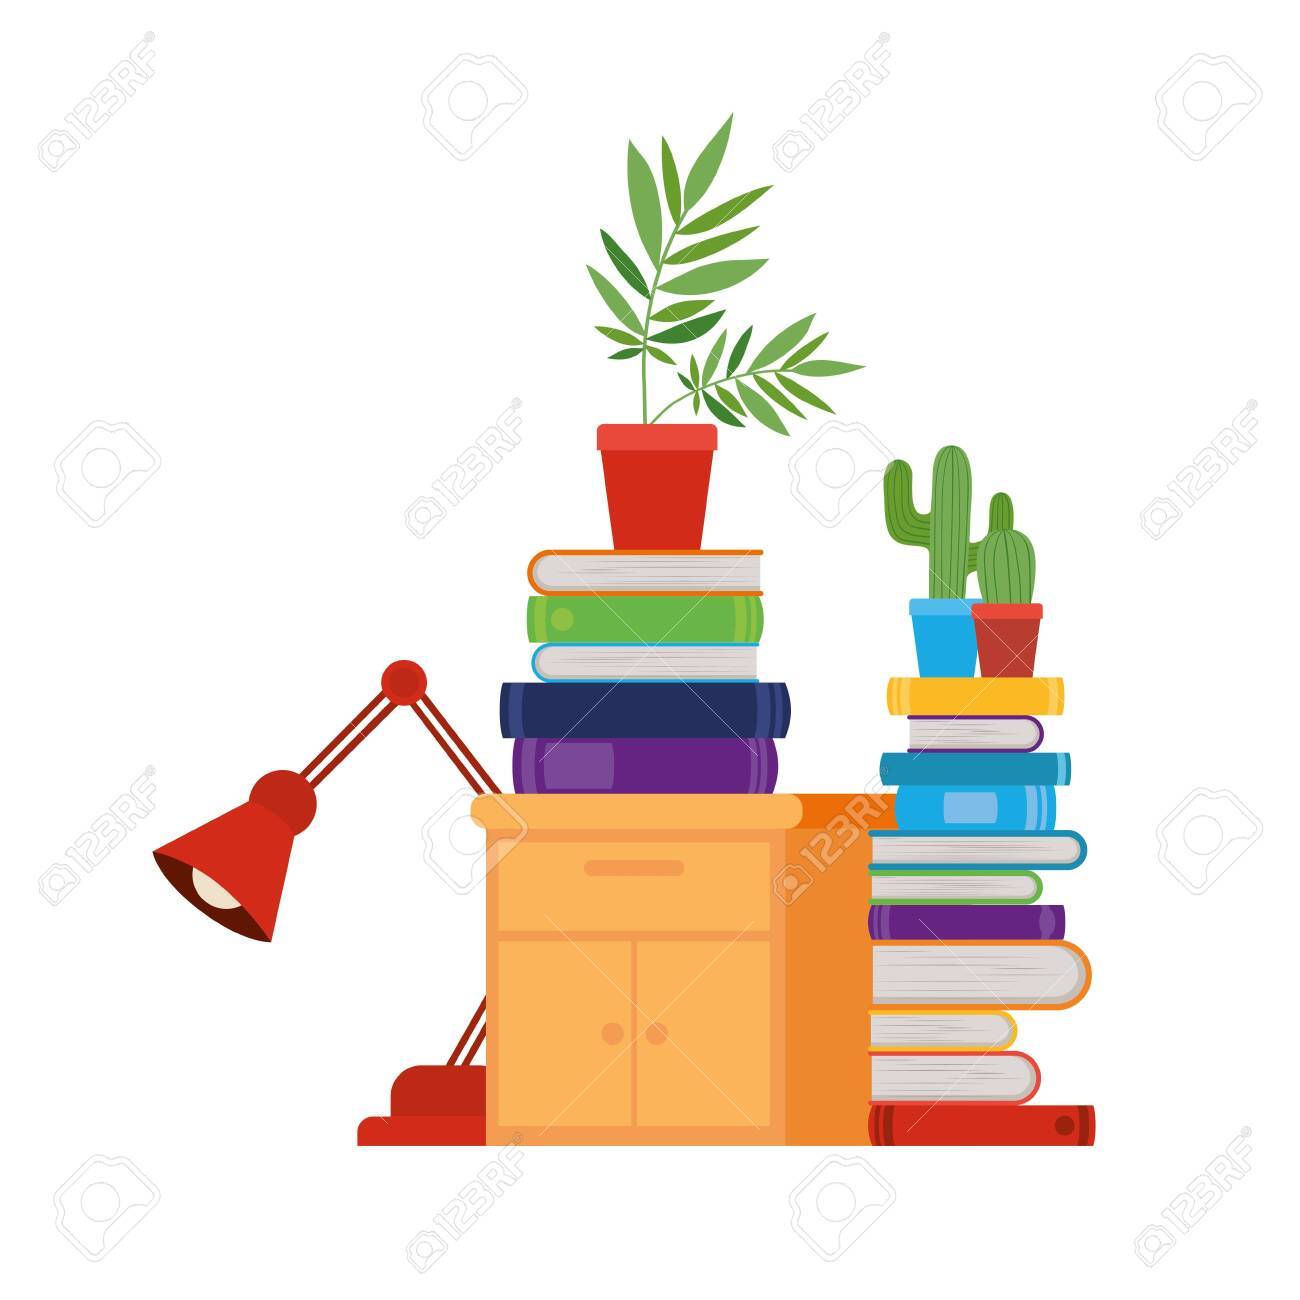 wooden drawer with stack of books in white background vector illustration design - 124199305